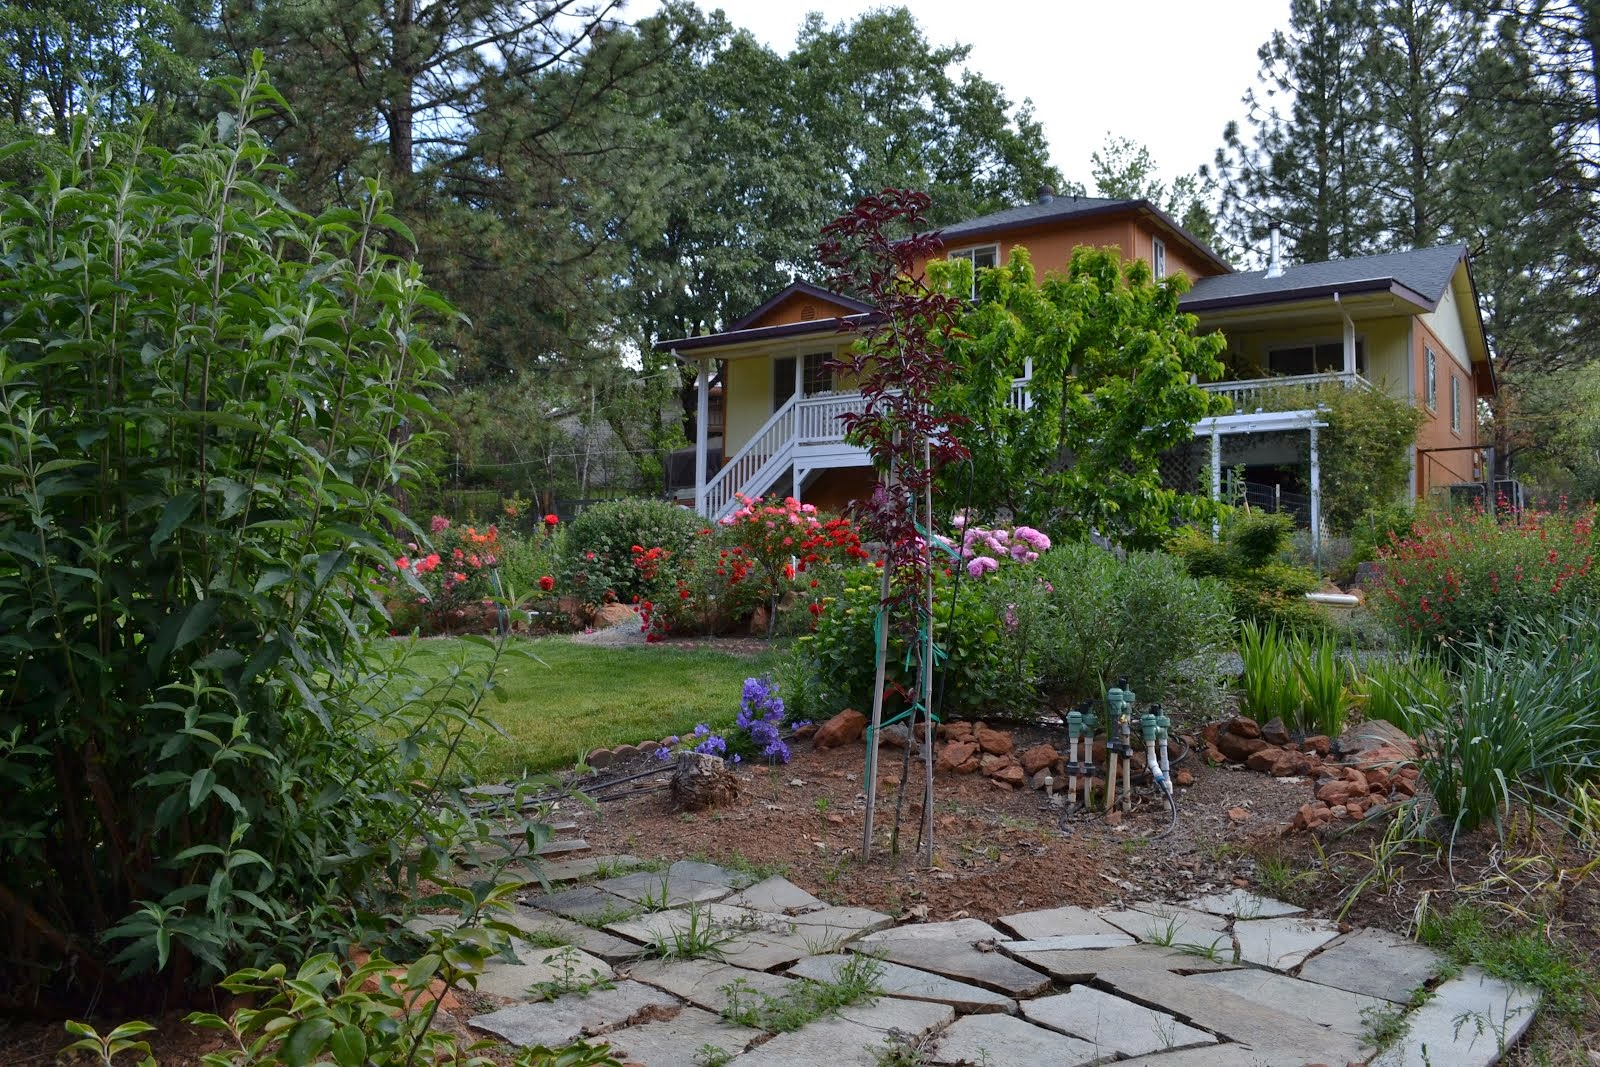 ALTA SIERRA HOME FOR SALE - GARDENER'S DREAM - SOLD